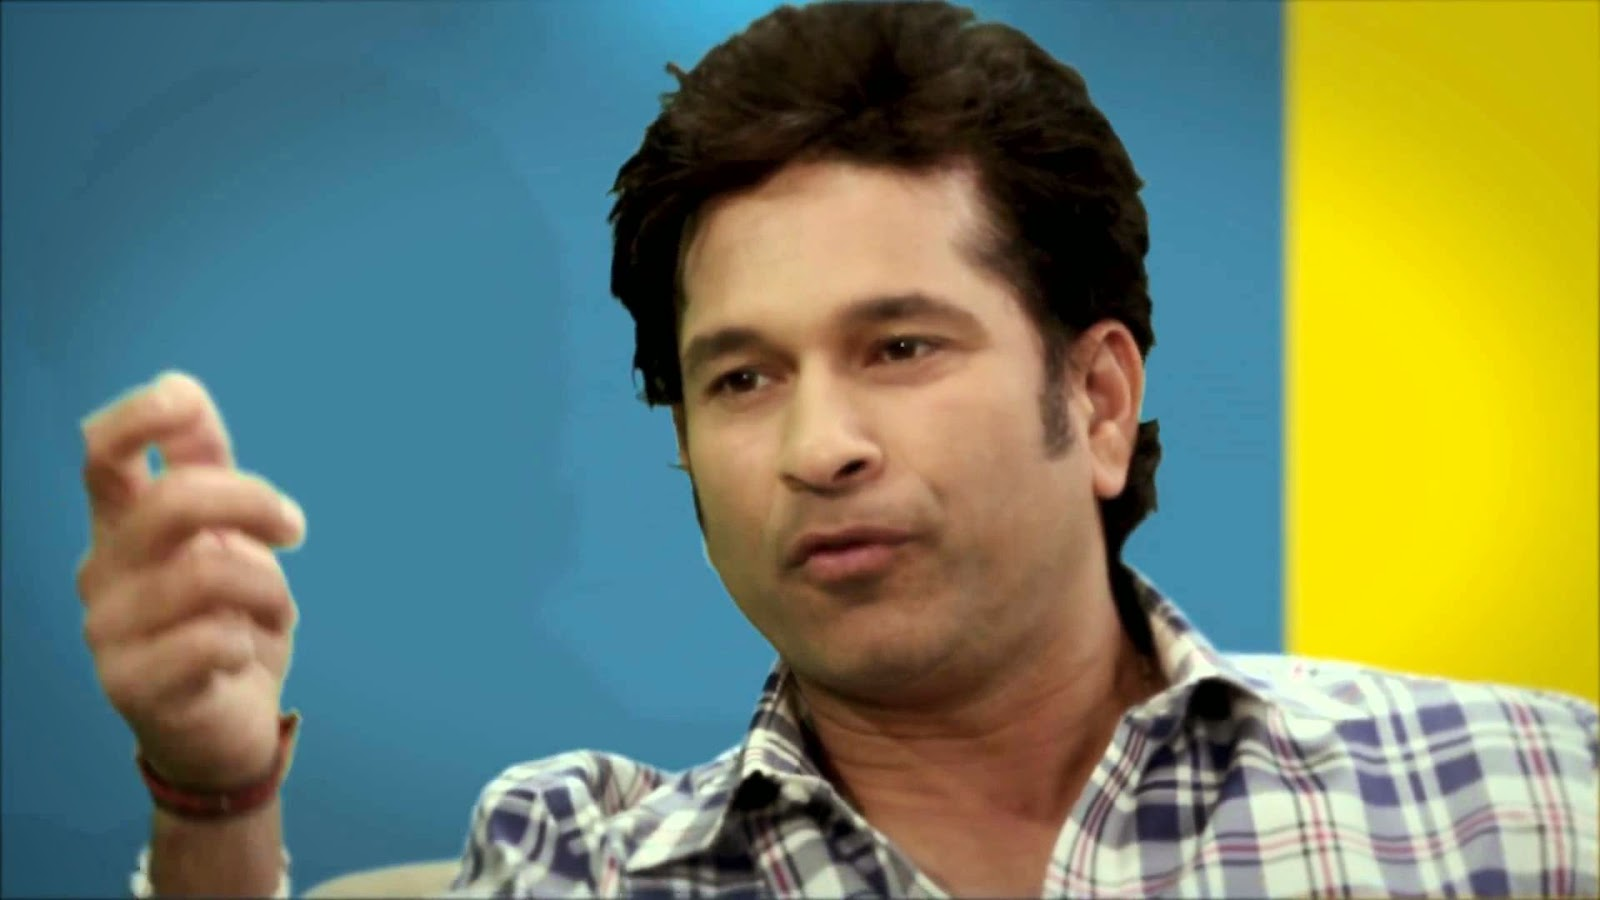 Sachin tendulkar cricketer hd wallpaper